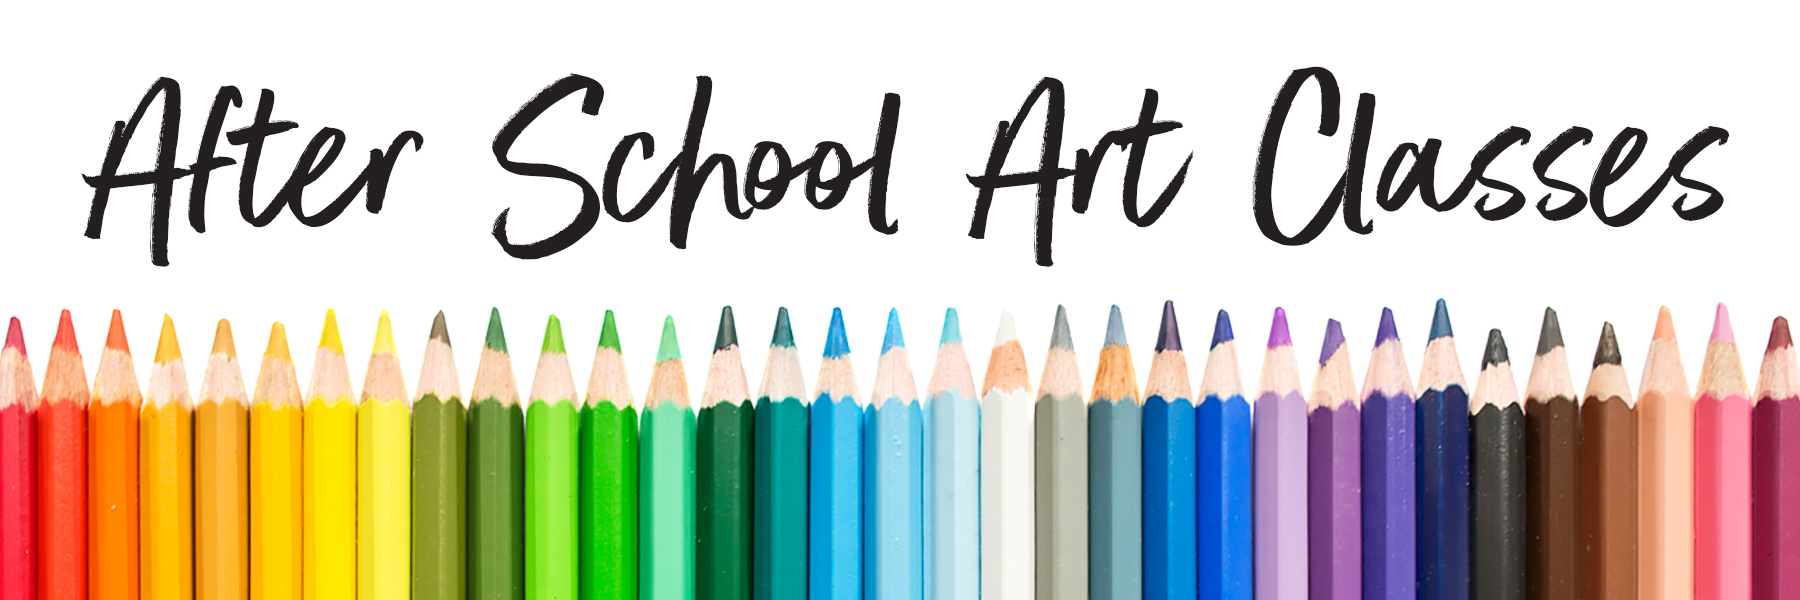 After School Art Classes Banner.jpg